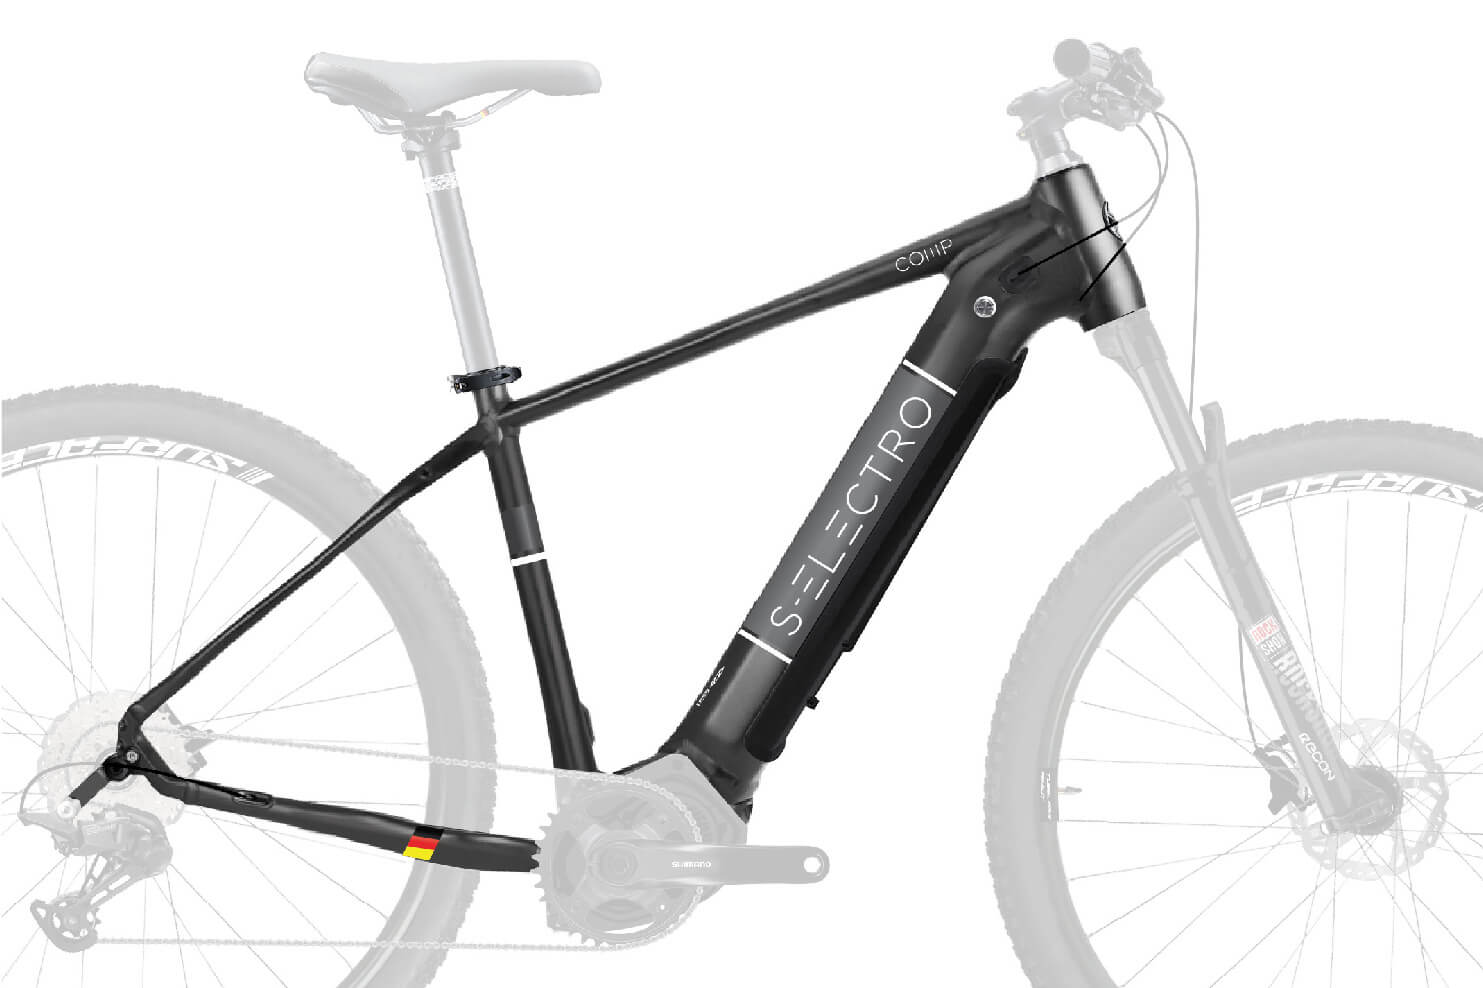 S-Electro Comp SL electric bike